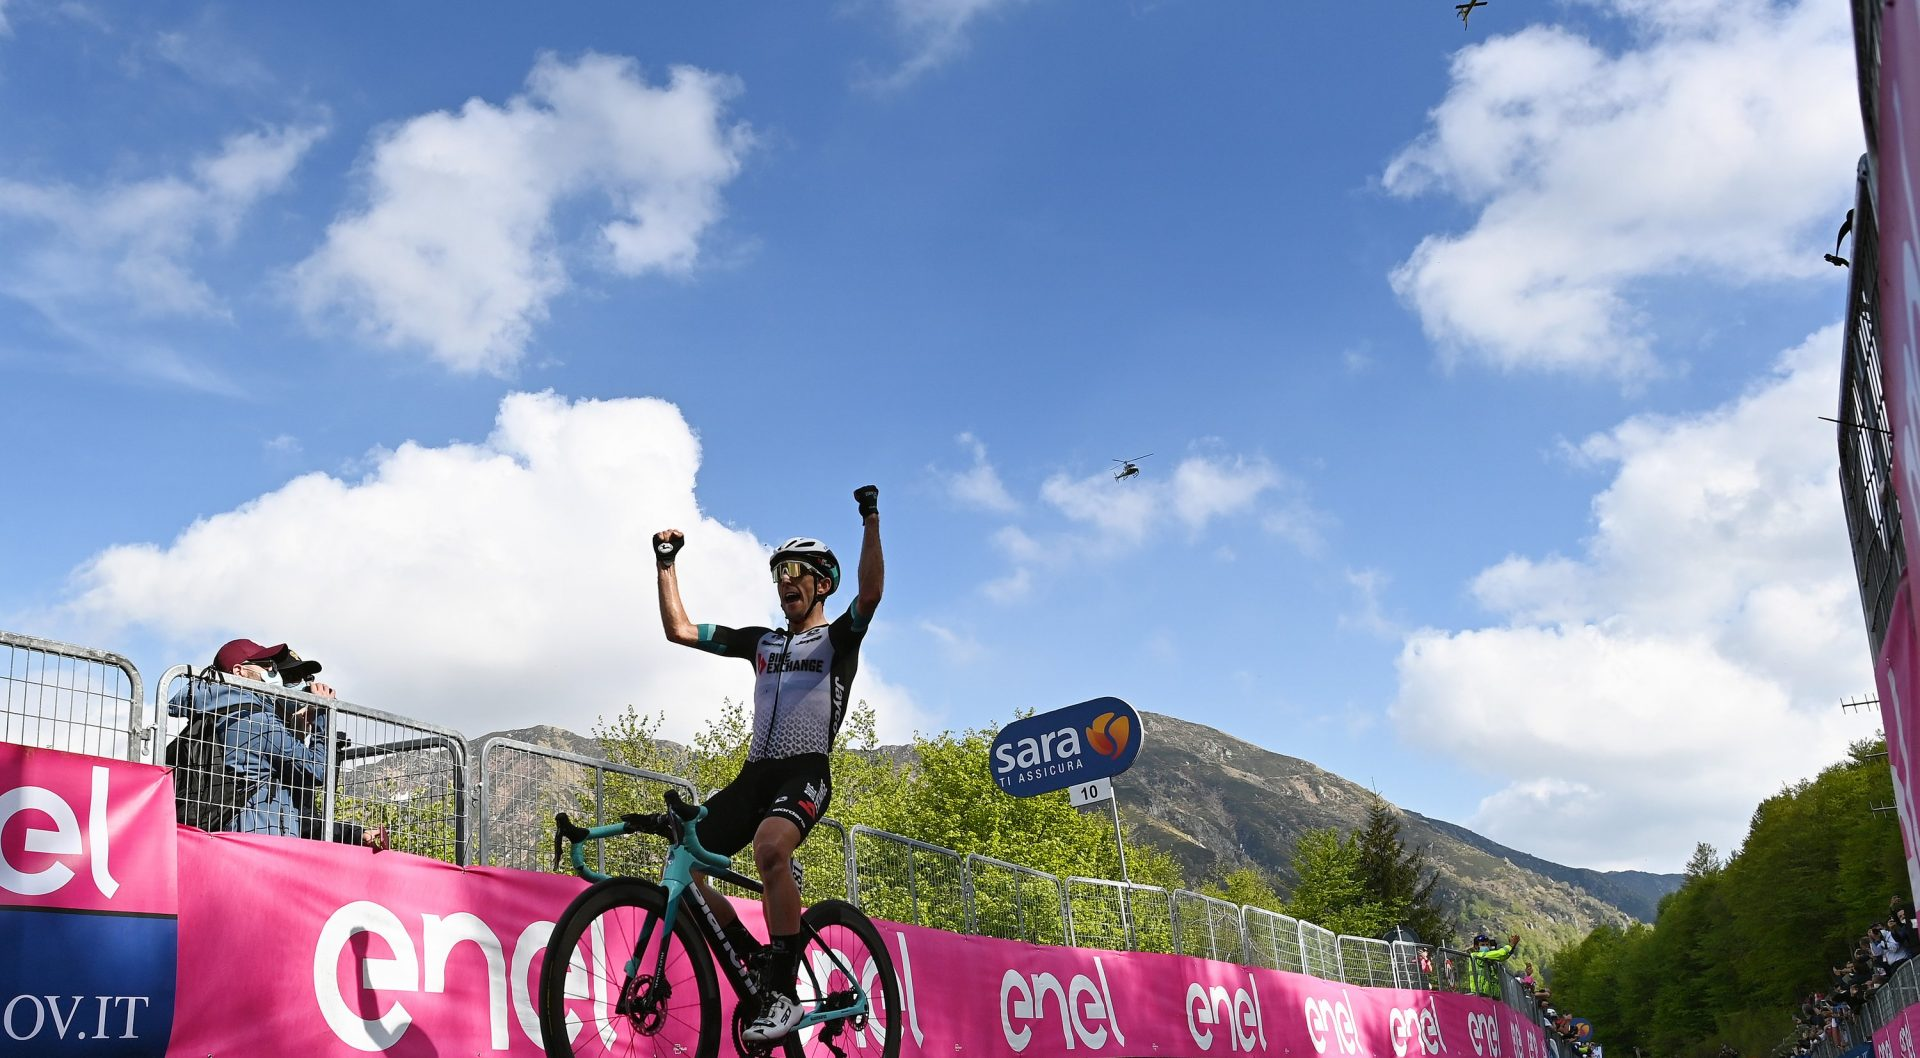 ALPE DI MERA - VALSESIA, ITALY - MAY 28: Simon Yates of United Kingdom and Team BikeExchange stage winner celebrates at arrival during the 104th Giro d'Italia 2021, Stage 19 a 166km stage from Abbiategrasso to Alpe di Mera - Valsesia 1531m / Team Presentation / Stage modified due to the tragic events on May the 23rd 2021 that involved the Mottarone Cableway / #UCIworldtour / @girodiitalia / #Giro / on May 28, 2021 in Alpe di Mera - Valsesia, Italy. (Photo by Stuart Franklin/Getty Images)